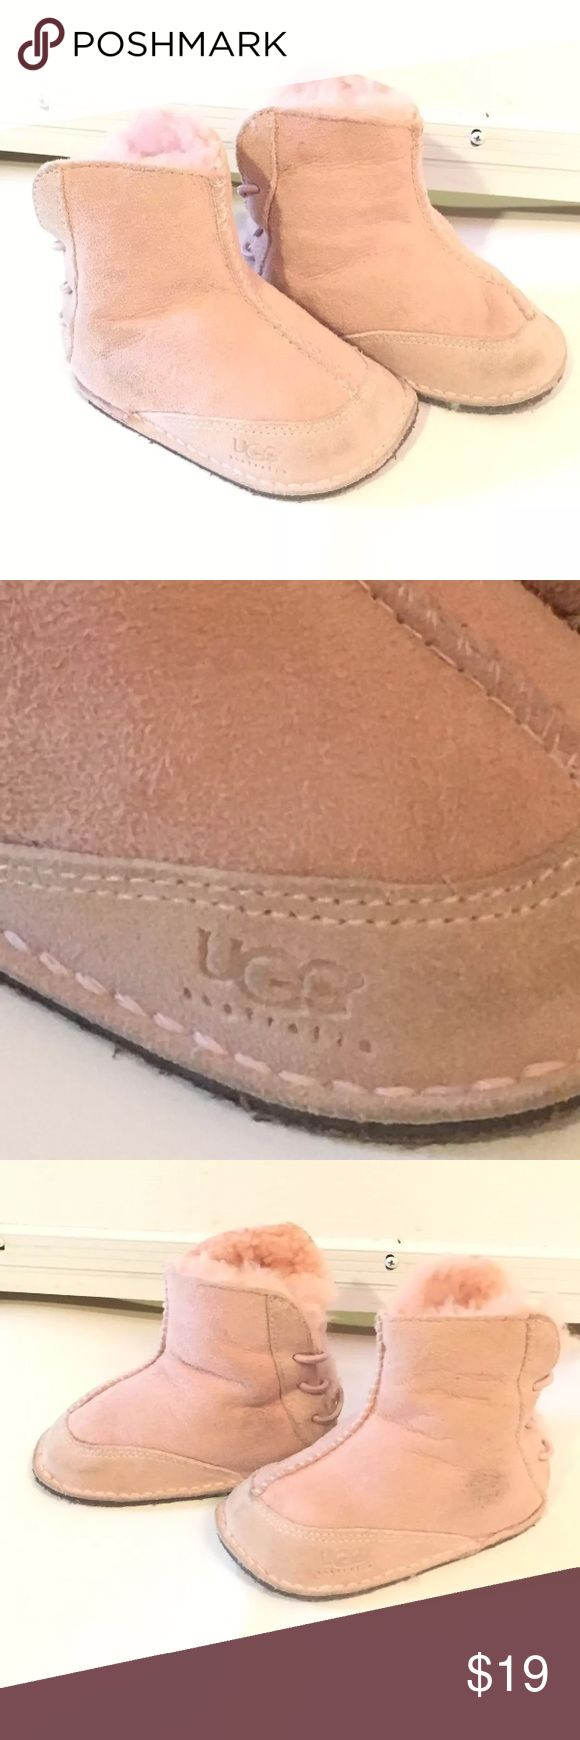 Baby ugg pink small UGG light Pink Baby Girls Baby Boo EUC Size Small Suede Shearling  Soles in perfect shape, minor dirty spots  Check out my other listings UGG Shoes Baby & Walker